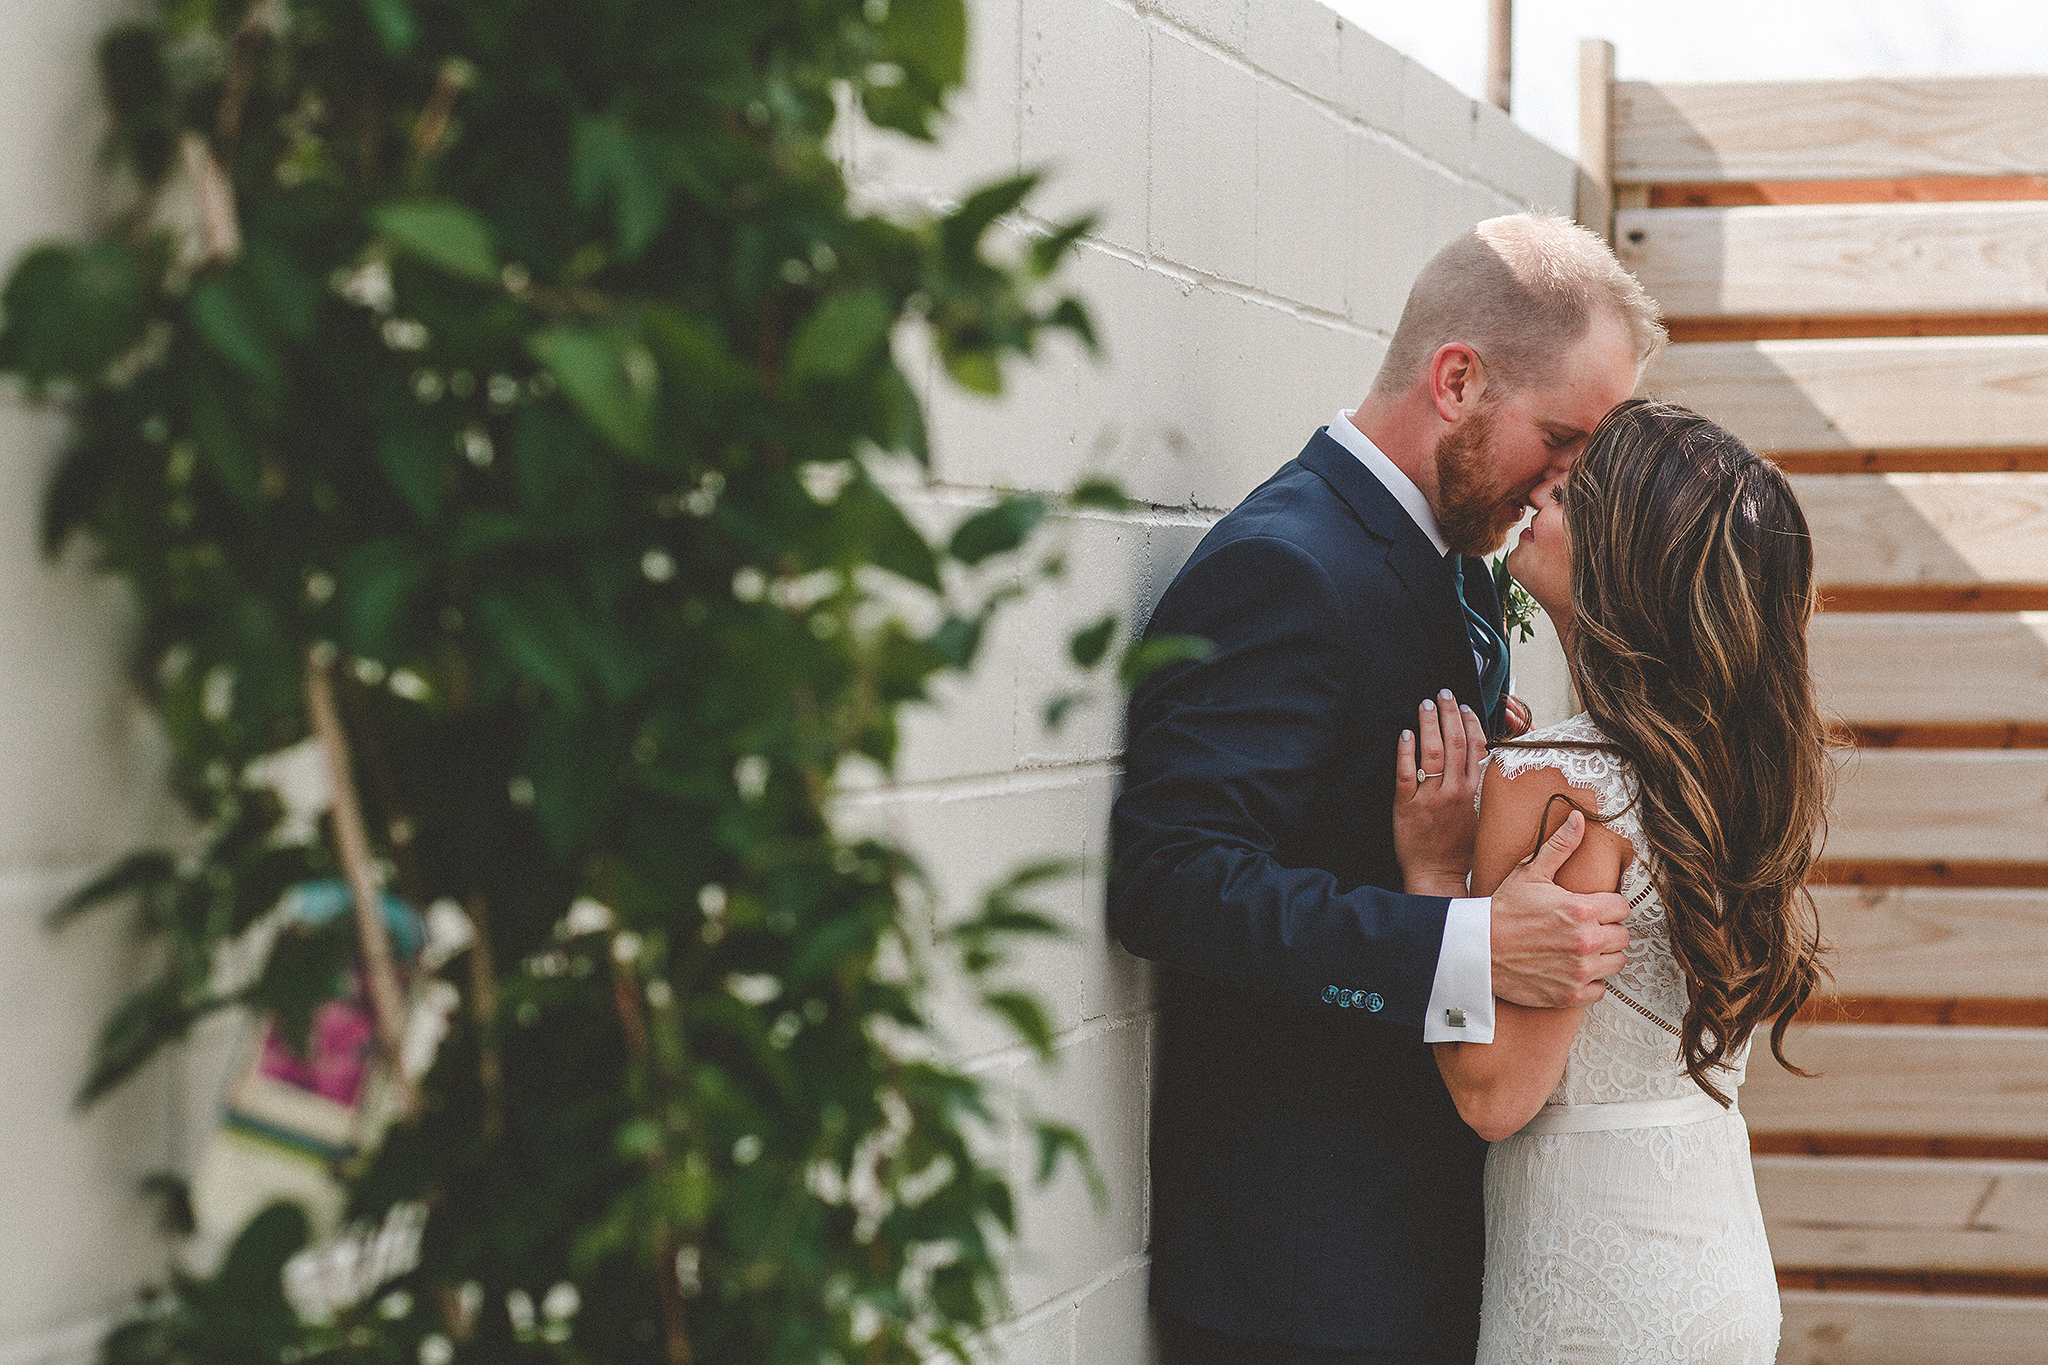 bride/groom candid intimate picture || the ivy house milwaukee wedding photographer | chrissy deming